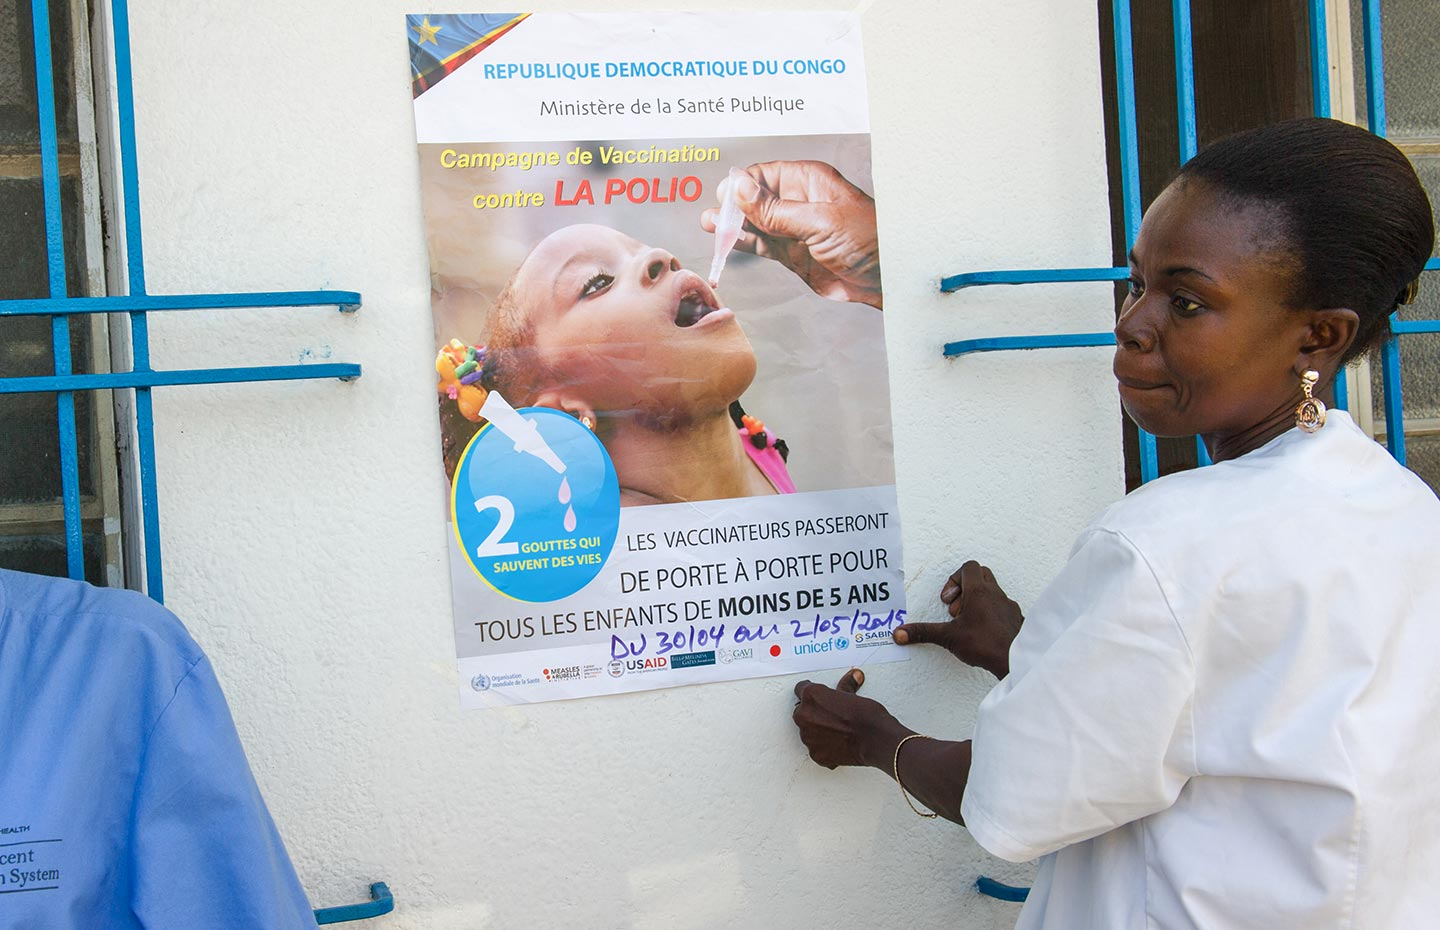 GAVI/2015/Phil Moore- A nurse attaches a poster advertising a door-to-door polio vaccination campaign in Kinshasa, Democratic Republic of the Congo, on April 27, 2015